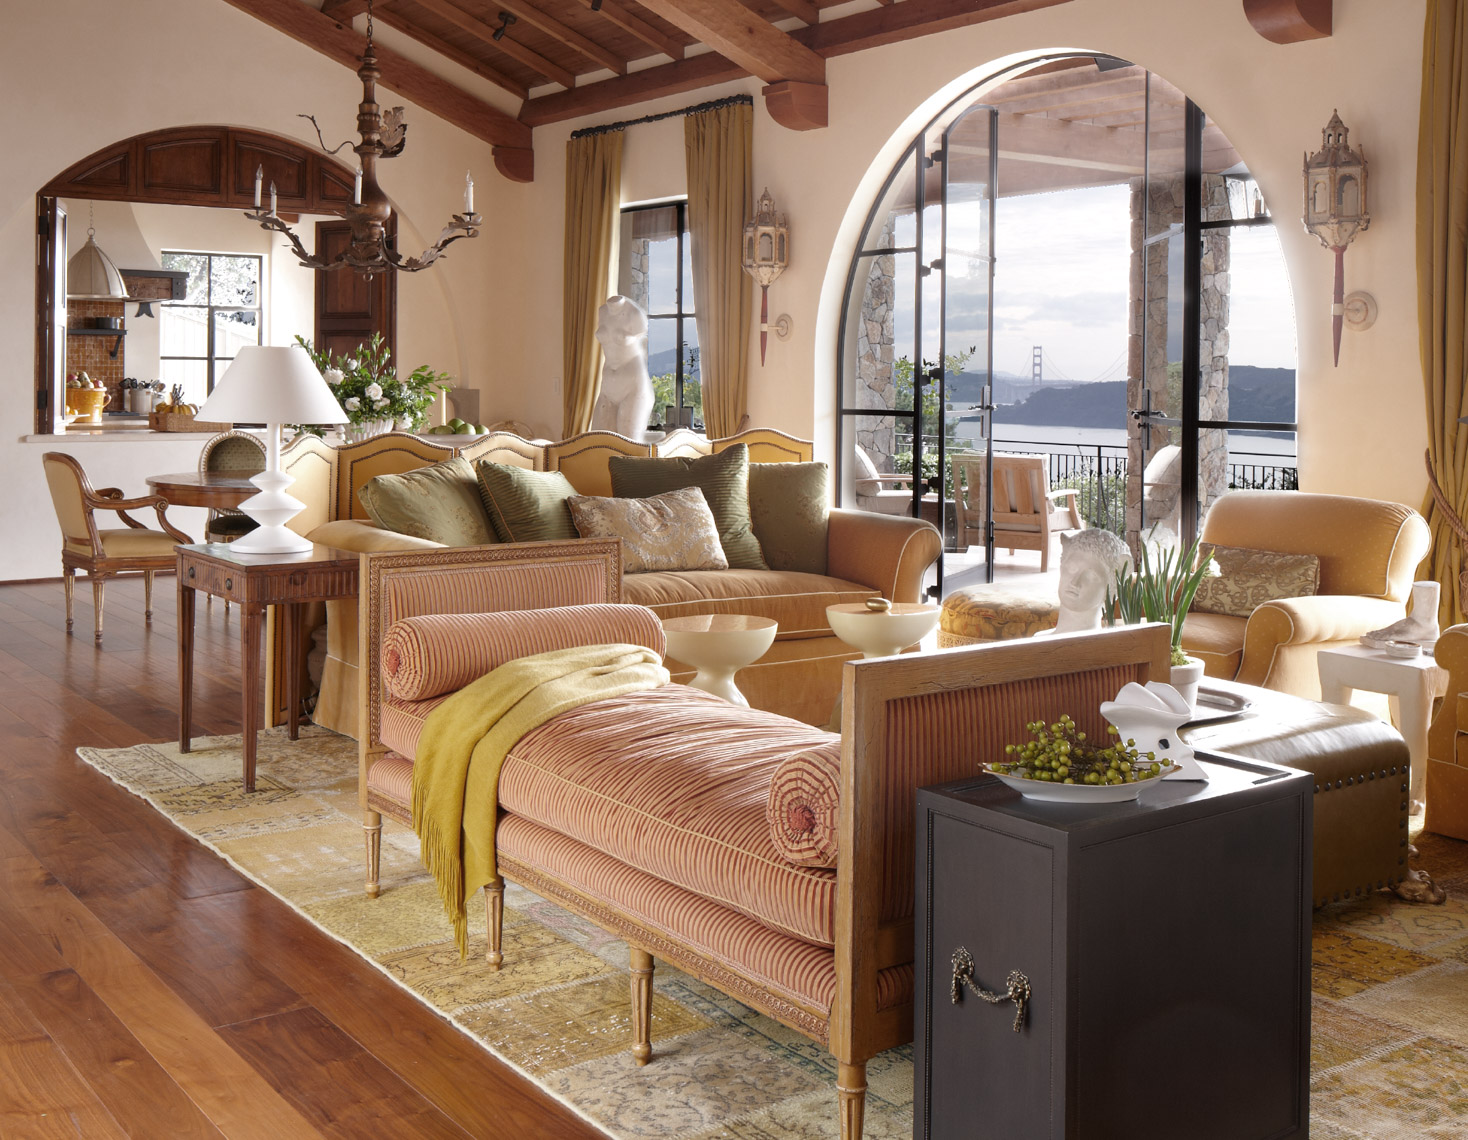 peach and yellow couches in warm living room interior overlooking ocean view